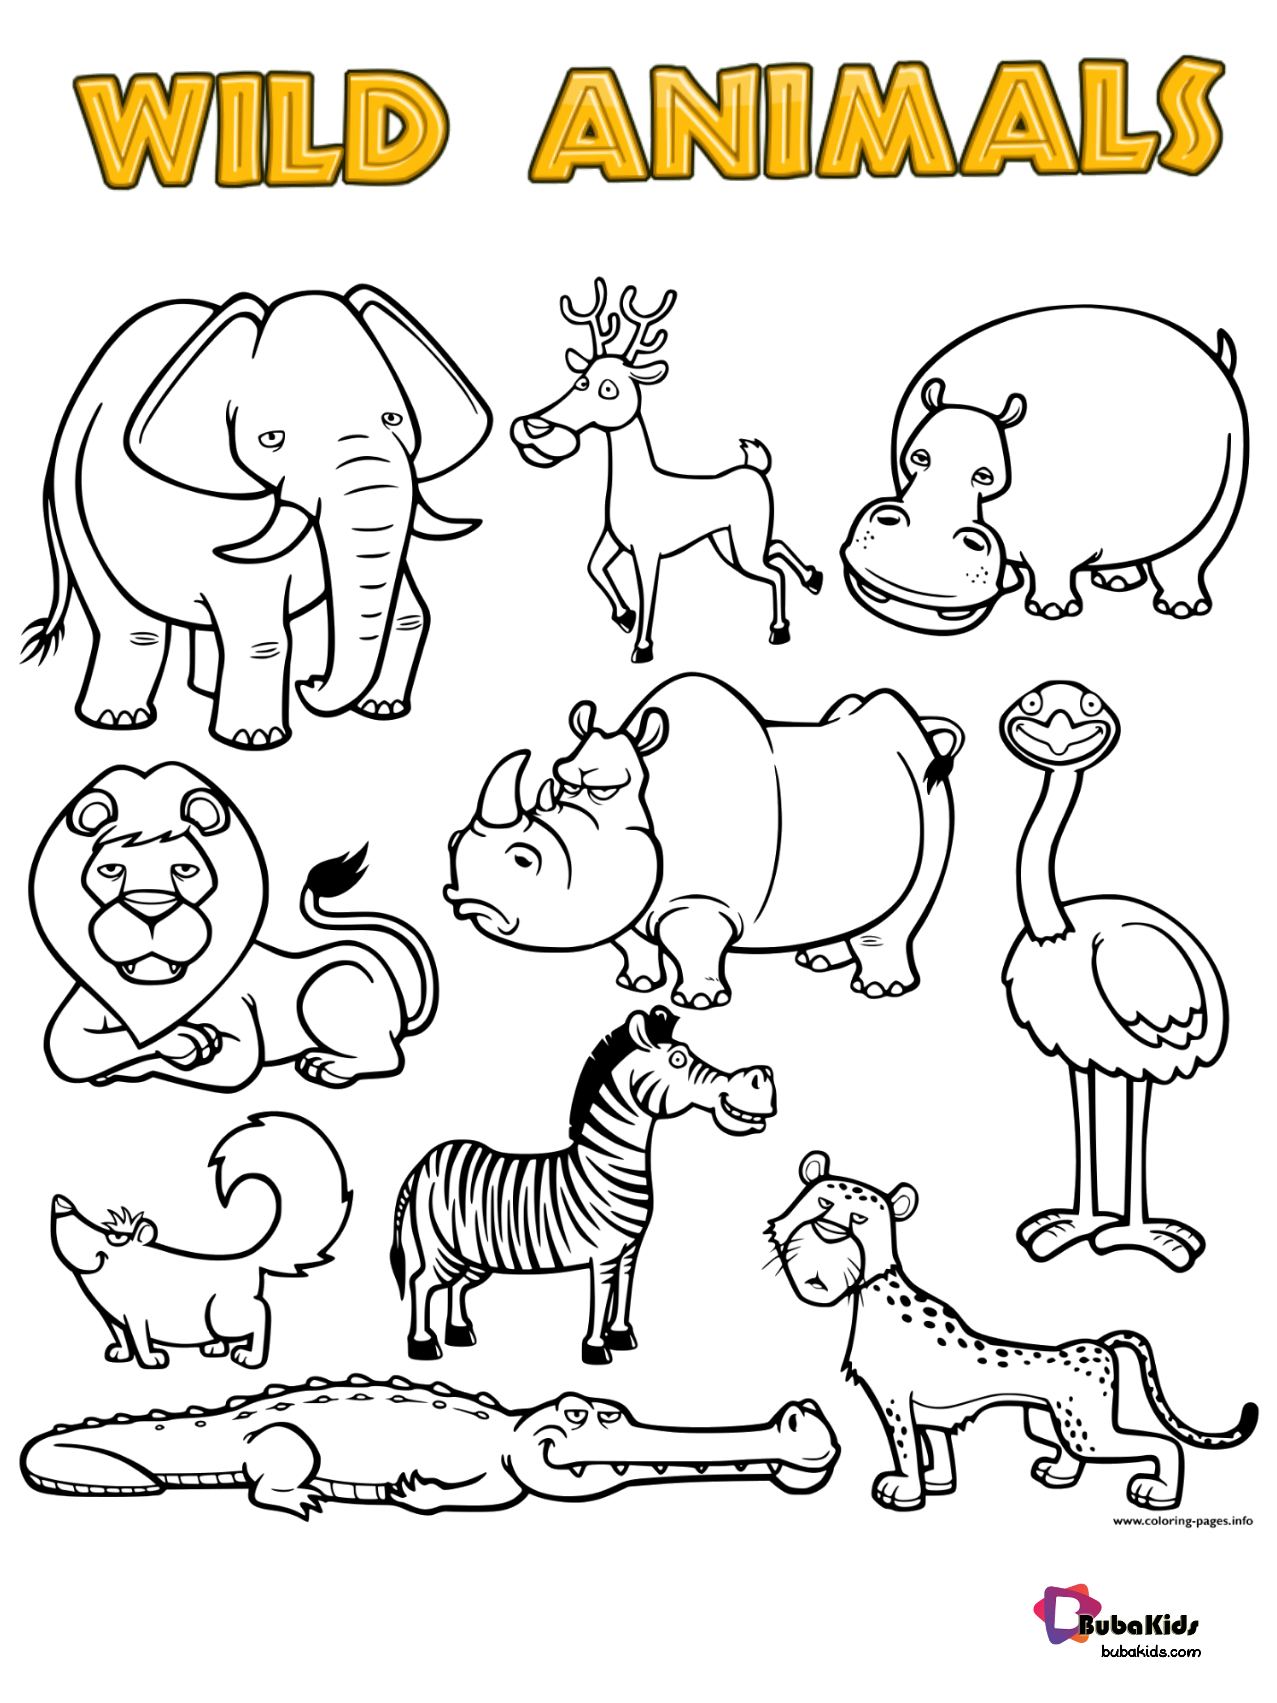 Free Download Wild Animals Printable Coloring Page Collection Of Animal Coloring Pages For Tee Wild Animals Printable Coloring Pages Printable Coloring Pages